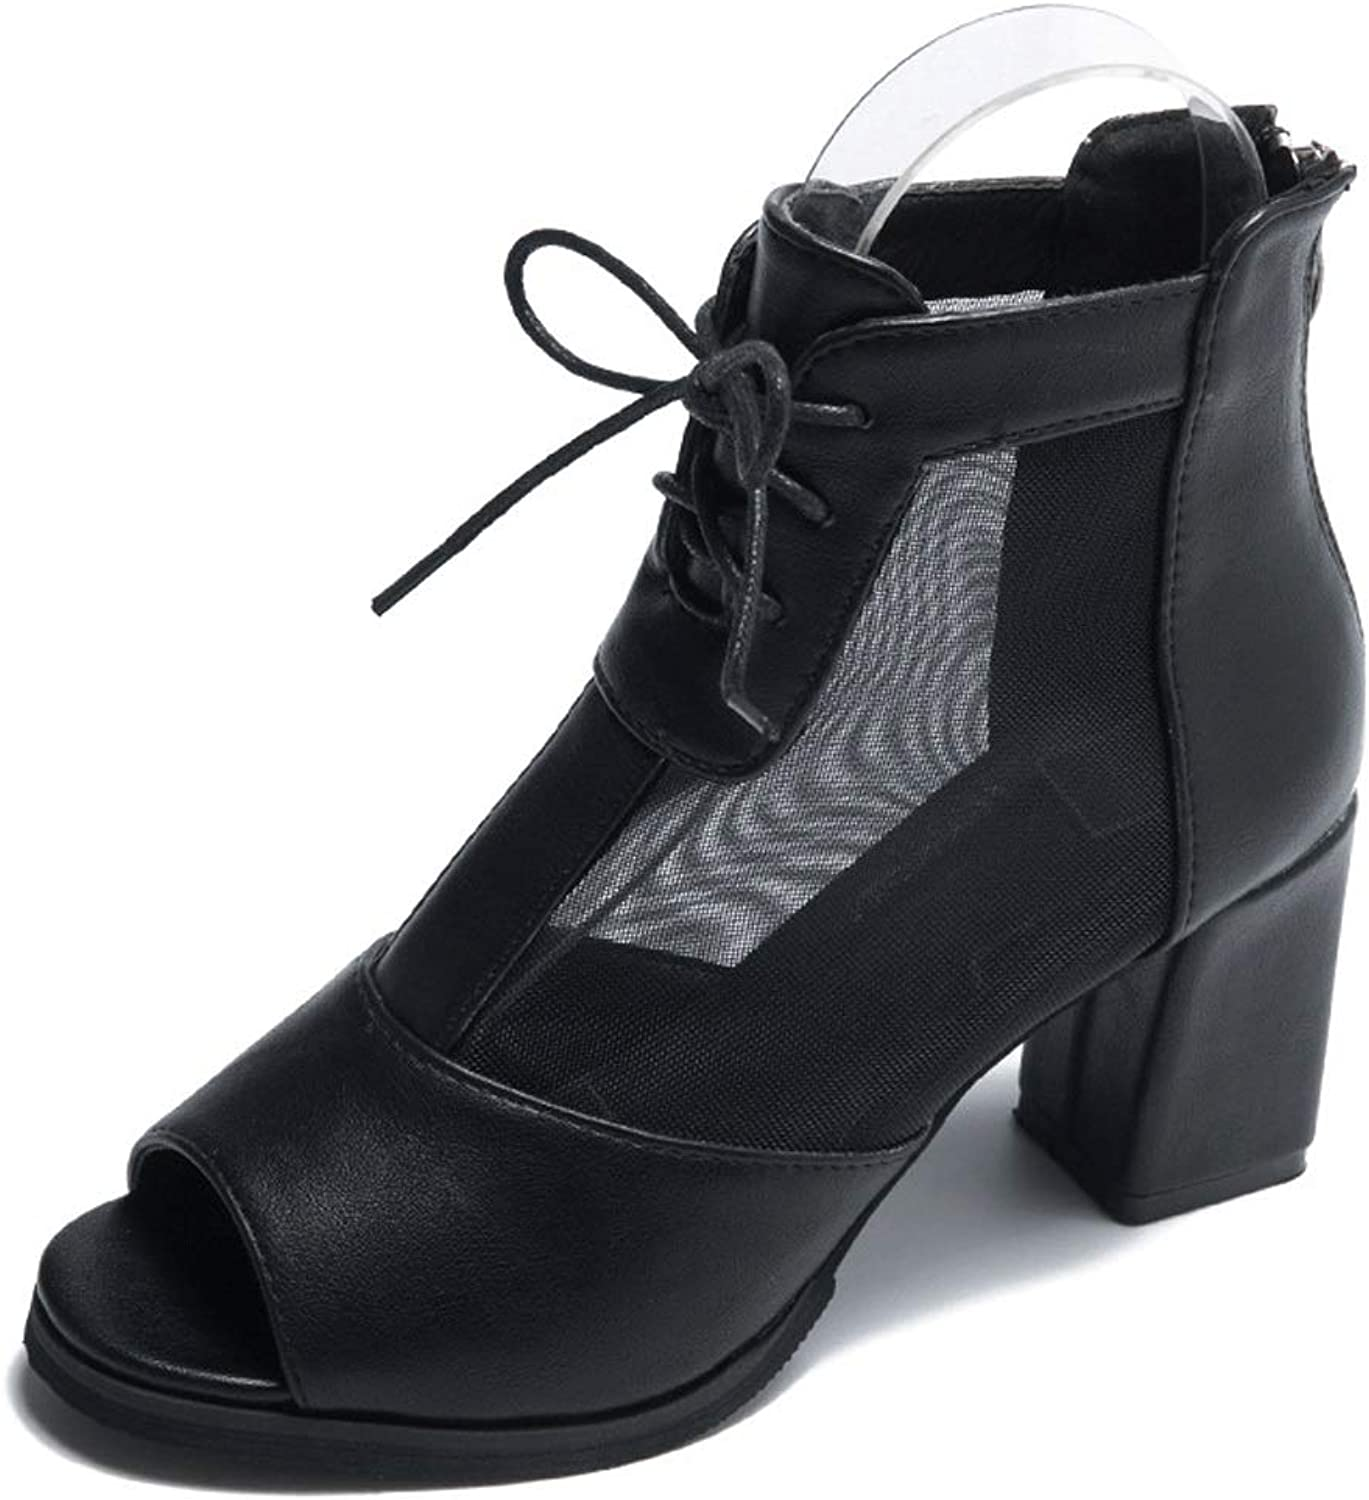 Sandals Female Summer Mesh High Heels Roman Thick with Back Zipper shoes (color   Black, Size   7.0 US)